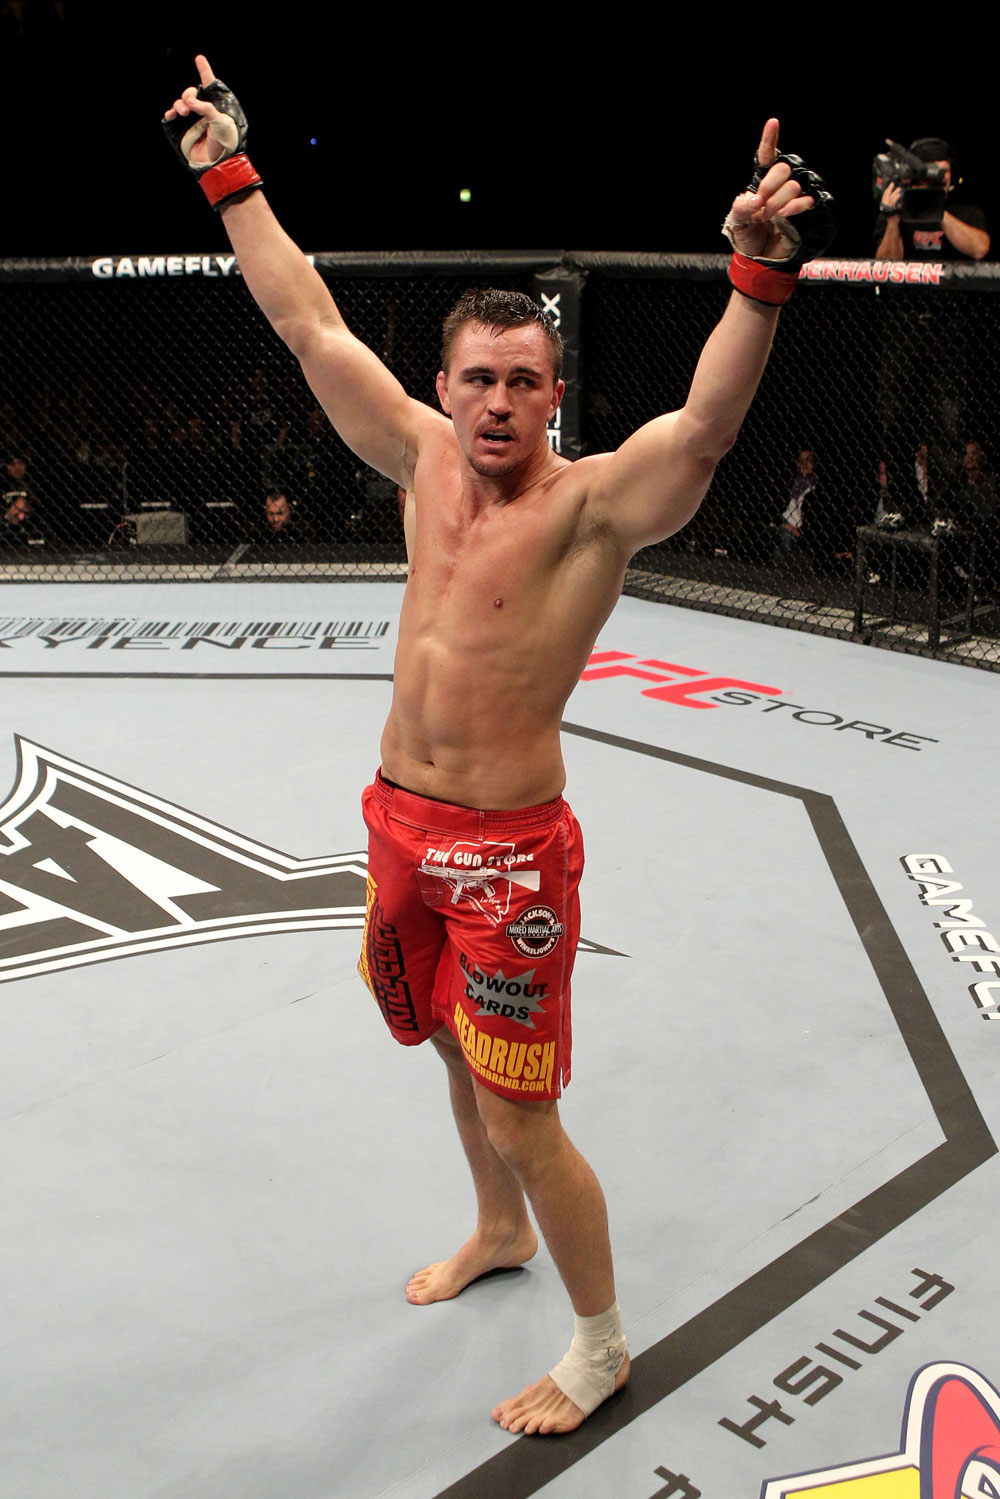 Kyle Noke of Australia celebrates victory by tap out in the 2nd round against Rob Kimmons of the USA during their UFC Middleweight bout at the Konig Pilsner Arena on November 13, 2010 in Oberhausen, Germany. (Photo by Josh Hedges/Zuffa LLC/Zuffa LLC)